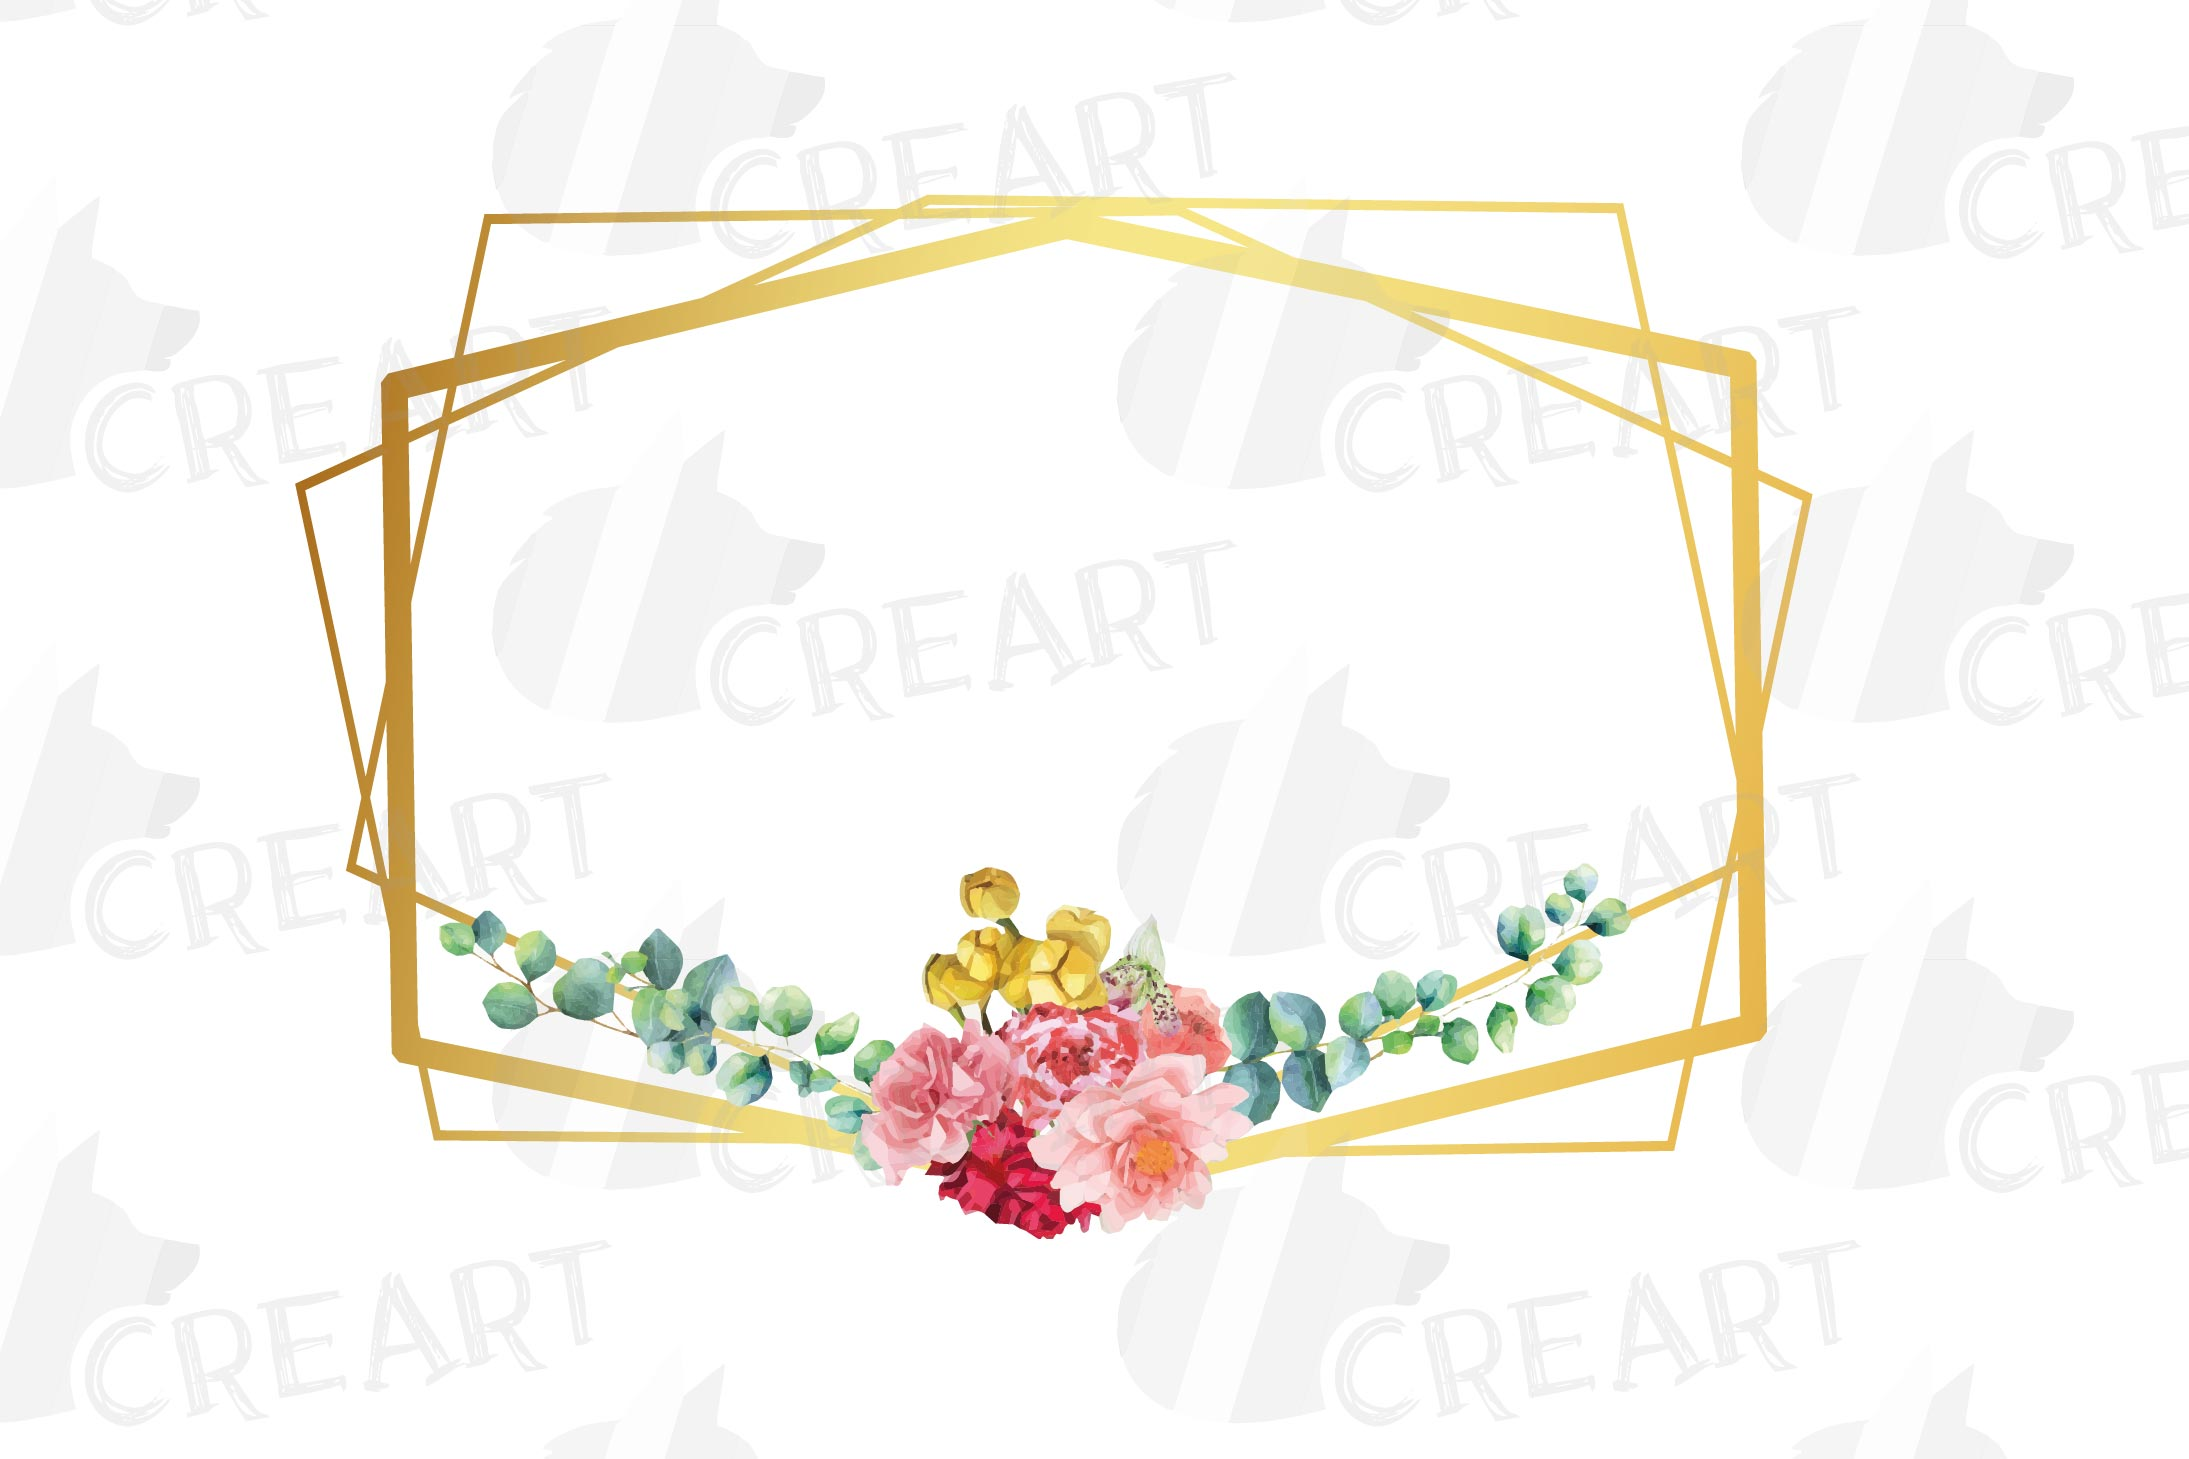 Watercolor floral golden frames and borders clip art pack example image 7